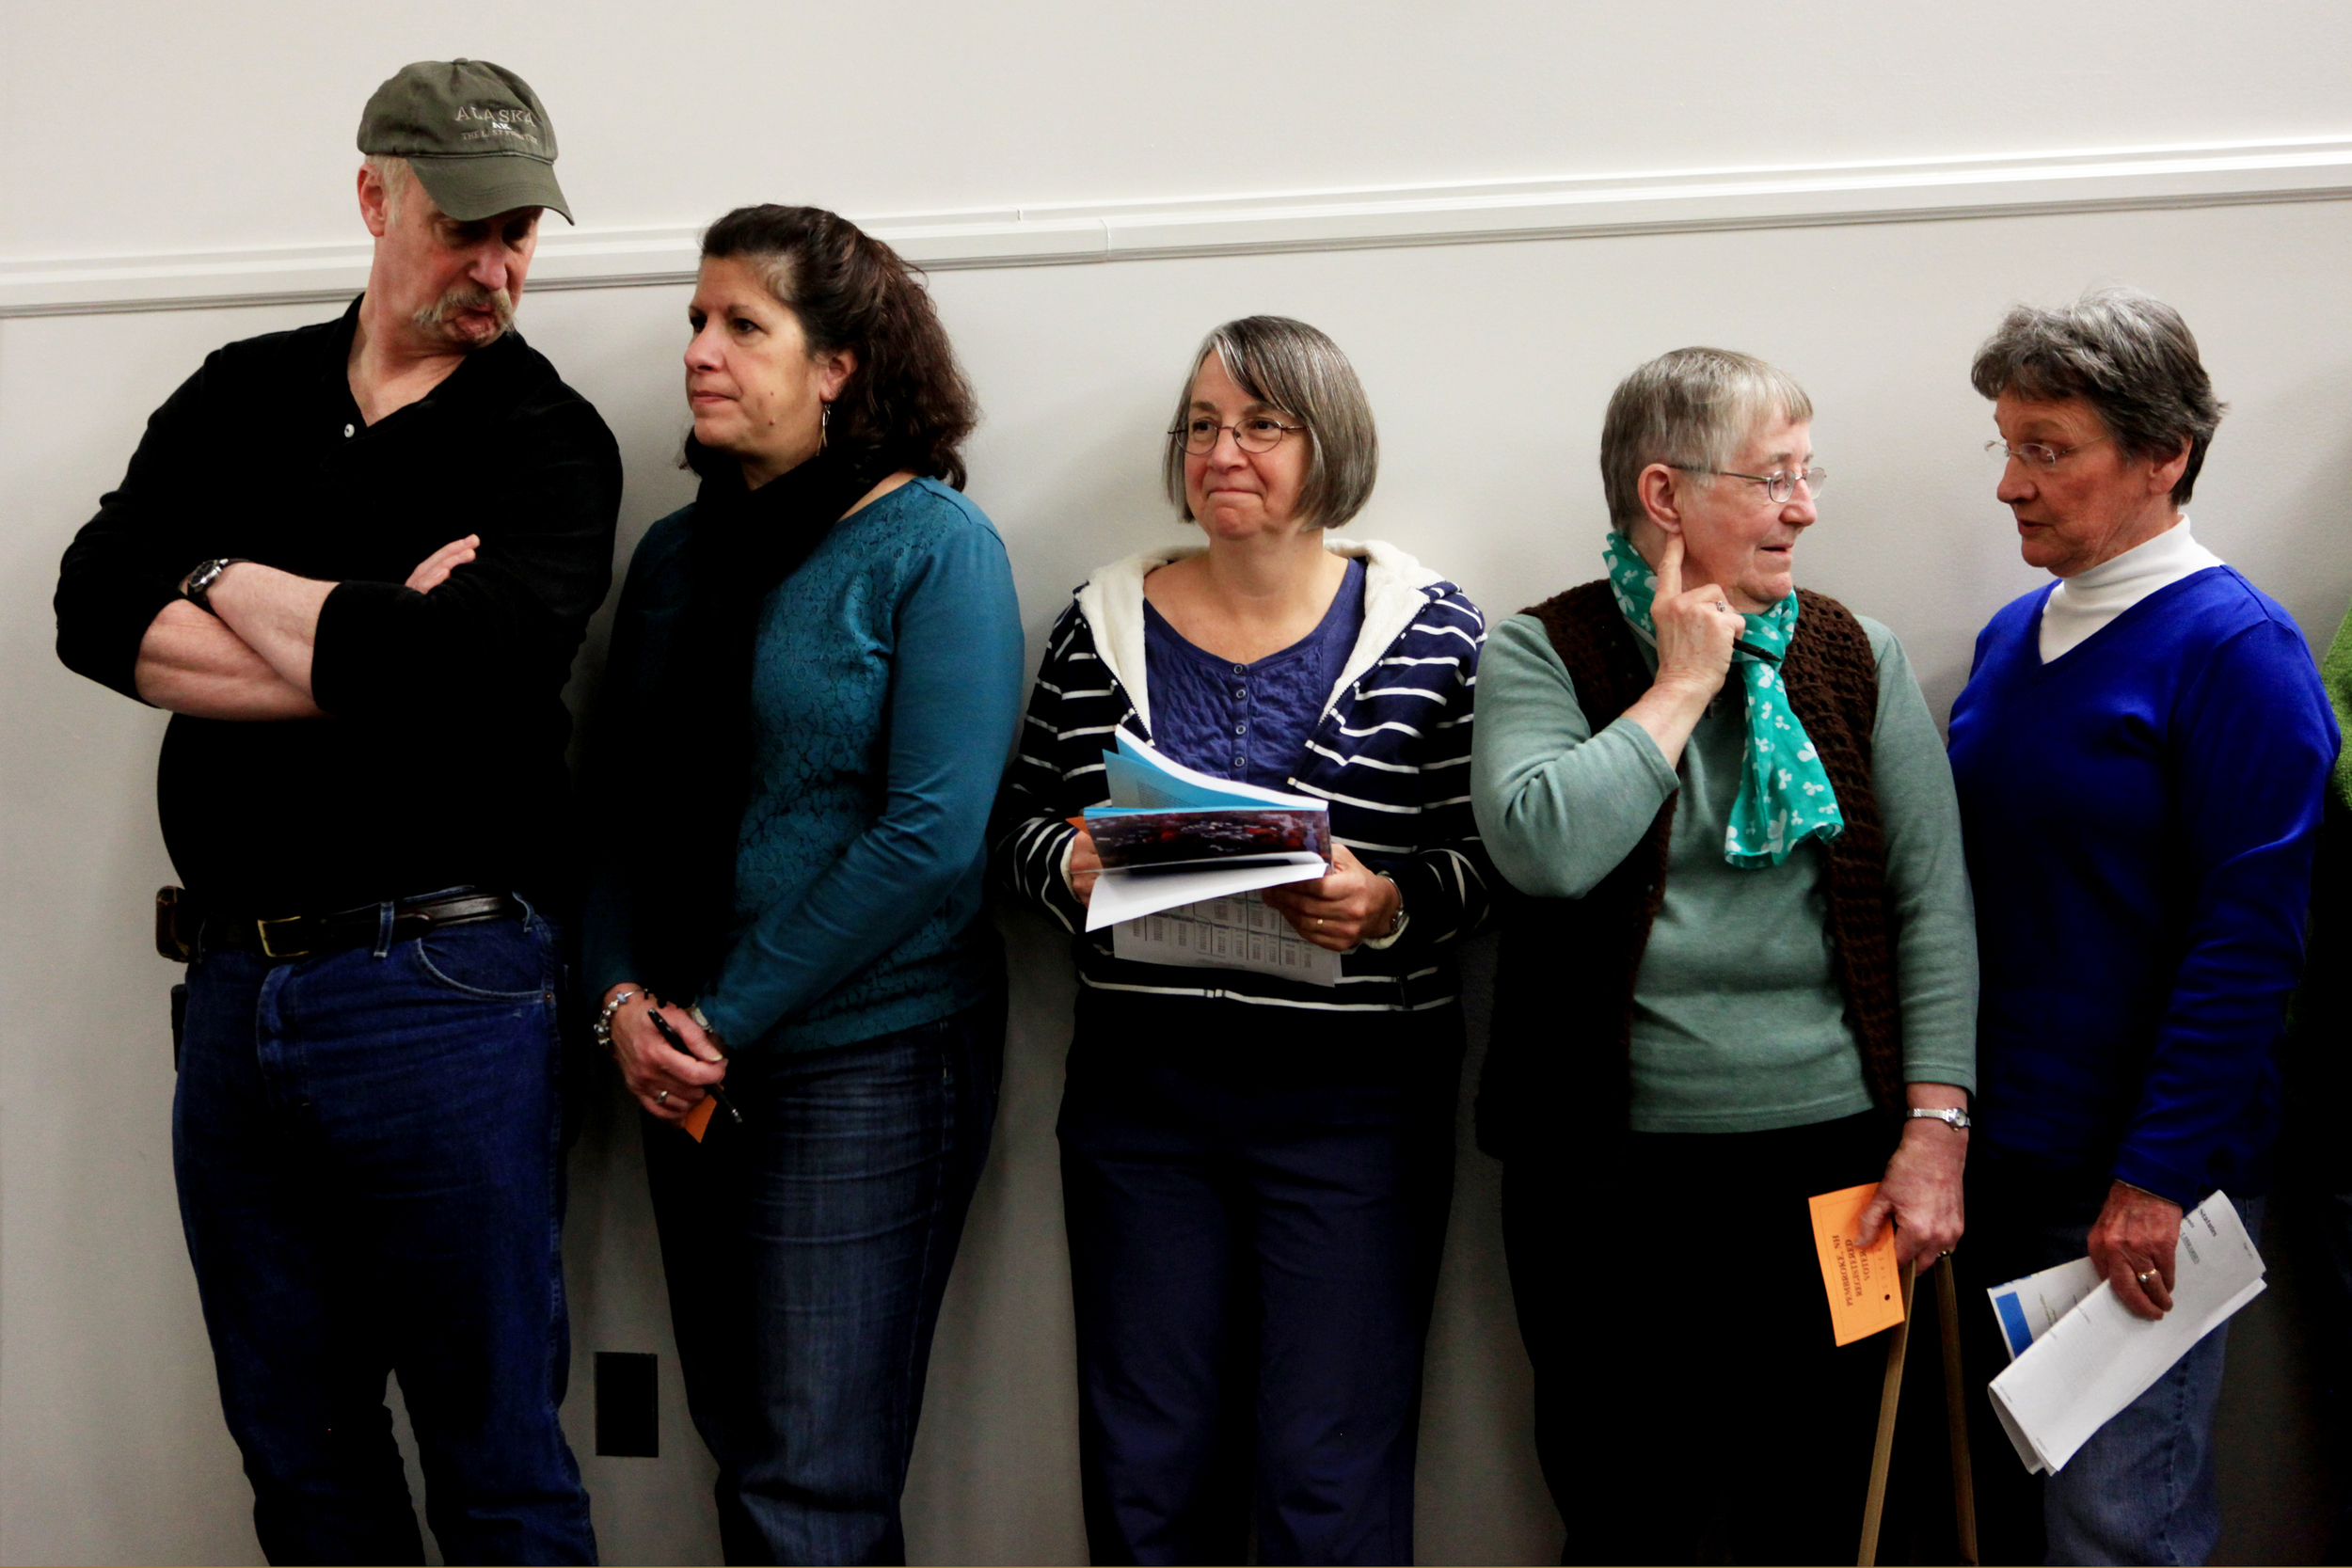 From left: Chuch Schmidt, his wife Denise, Sara Smith, Ann Hasbany and Marie Brezosky line up to vote by ballot on amendment four during the Pembroke Town Meeting at Pembroke Academy on Saturday, March 15, 2014.